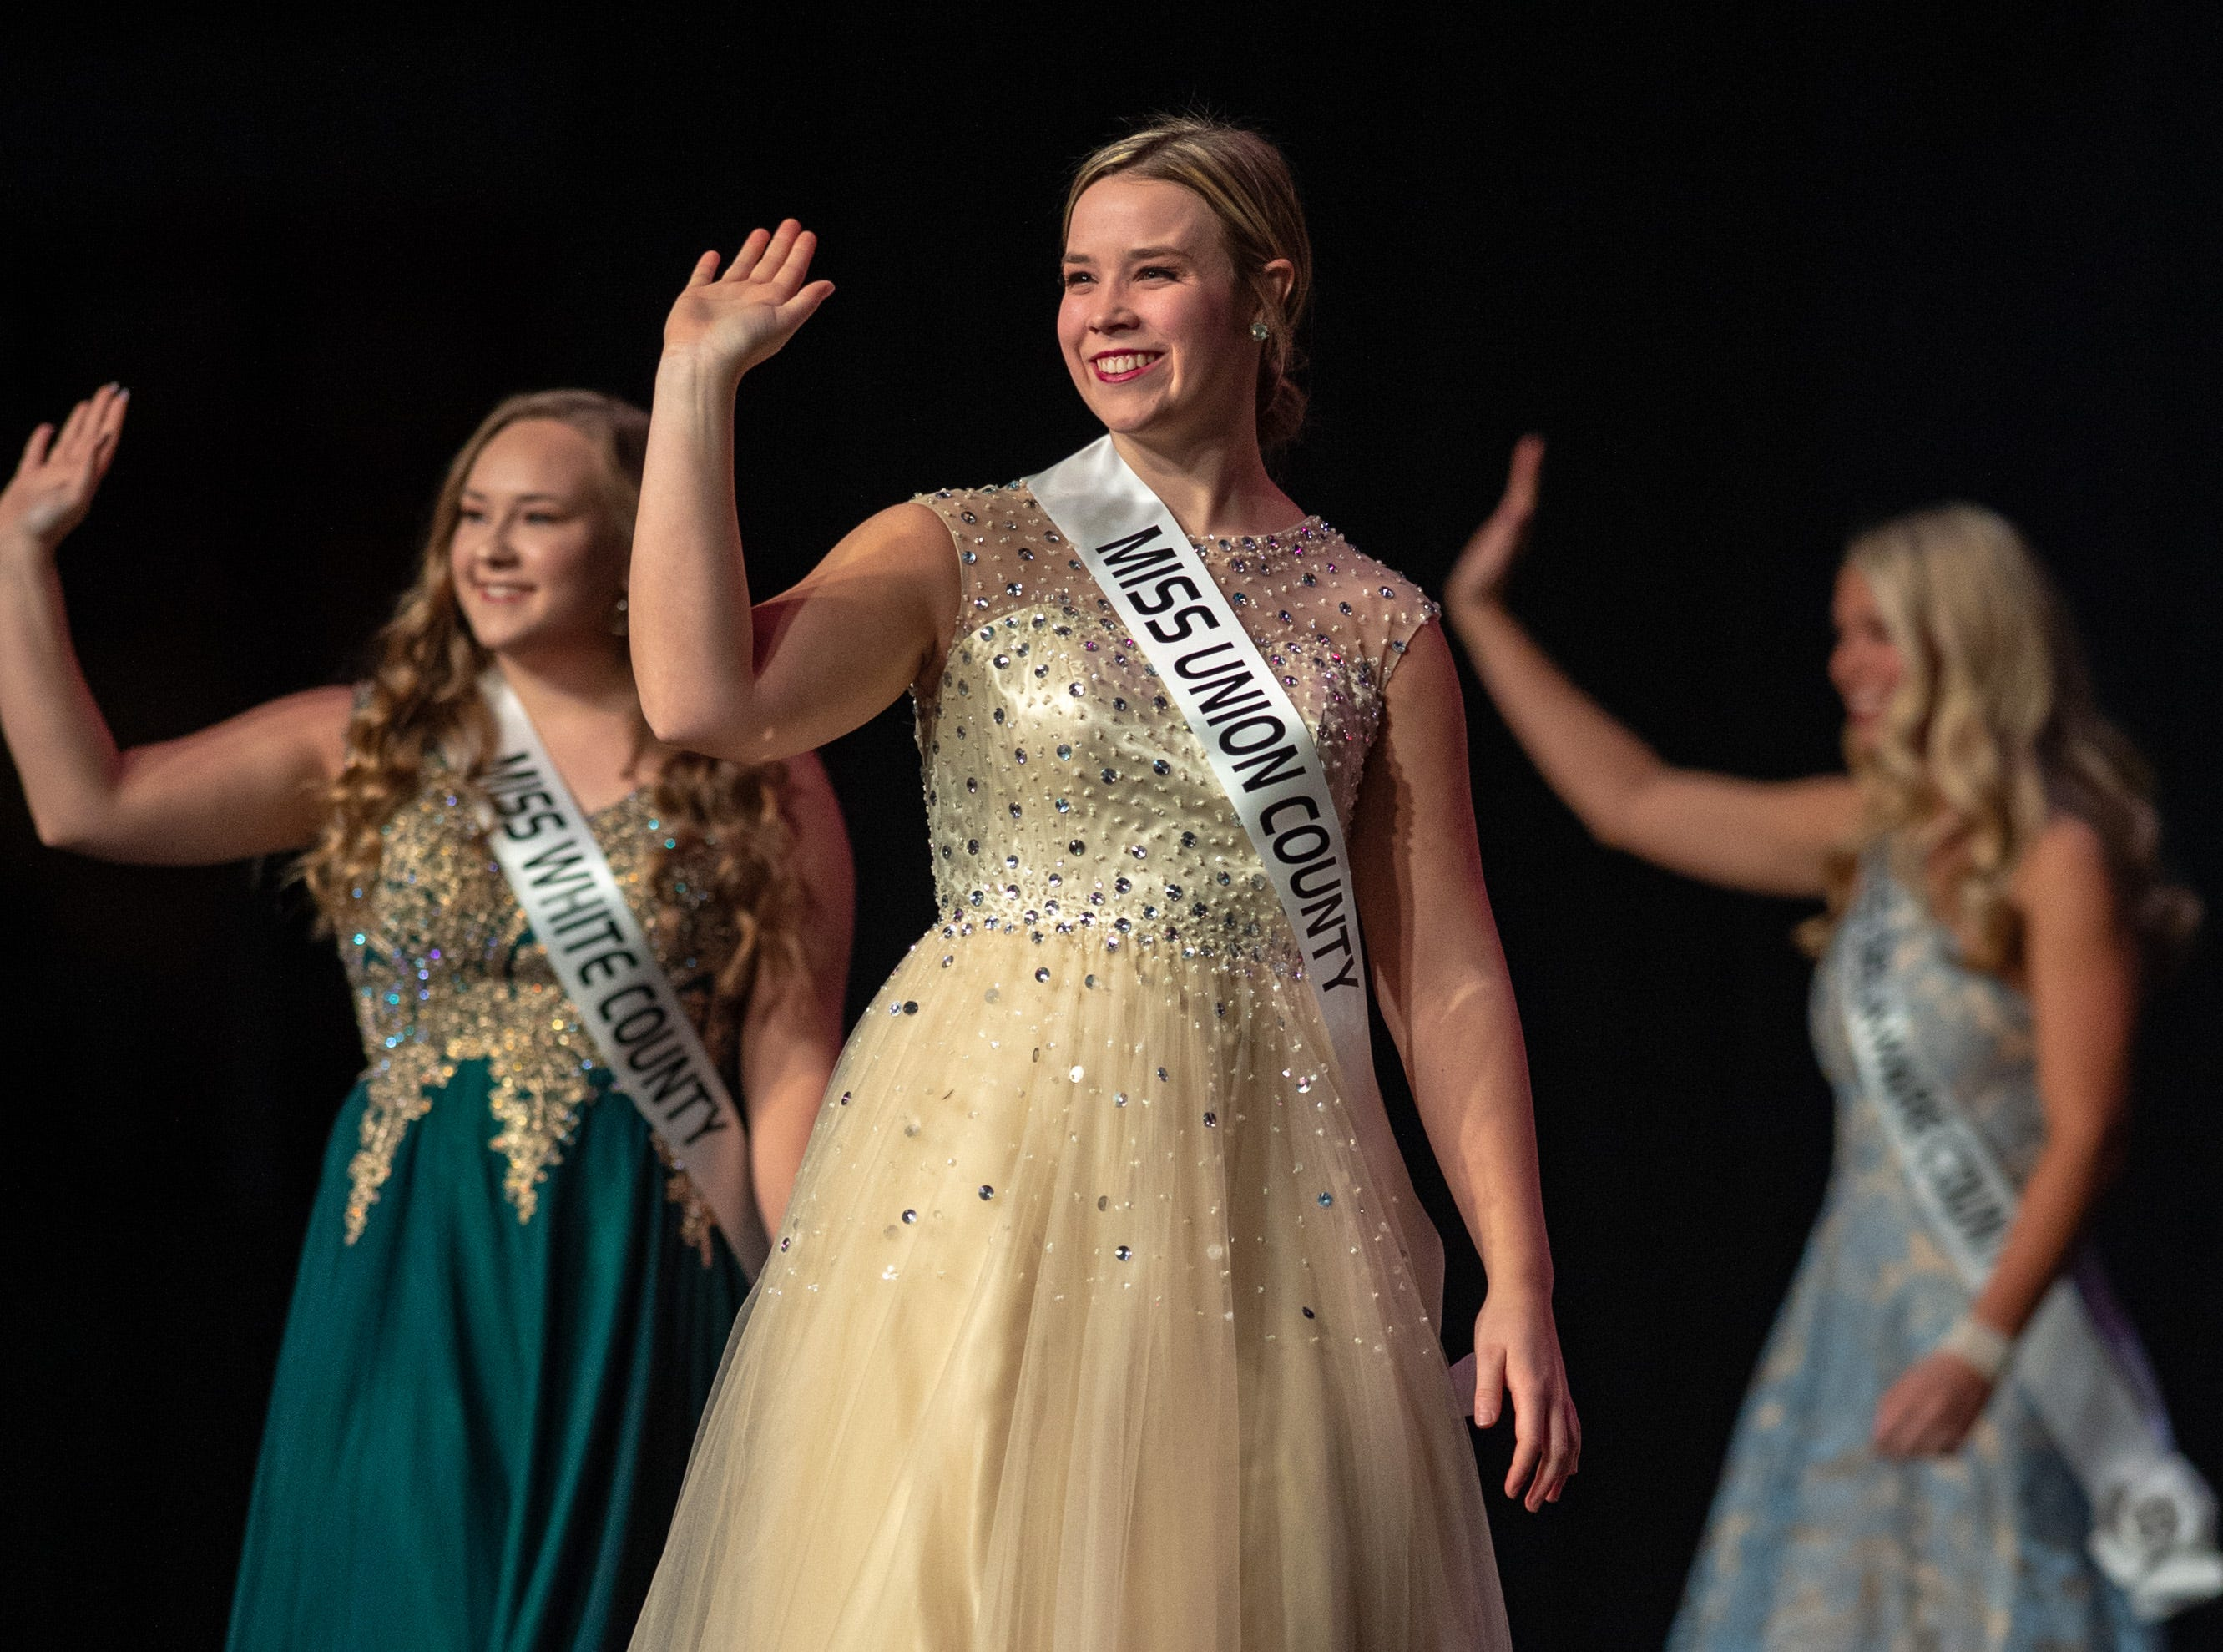 Miss Union County, Emily Myers, takes the stage with other contestantsduring the 61st Indiana State Fair Queen Pageant at the Indiana State Fairgrounds in Indianapolis on Sunday, Jan. 6, 2019.